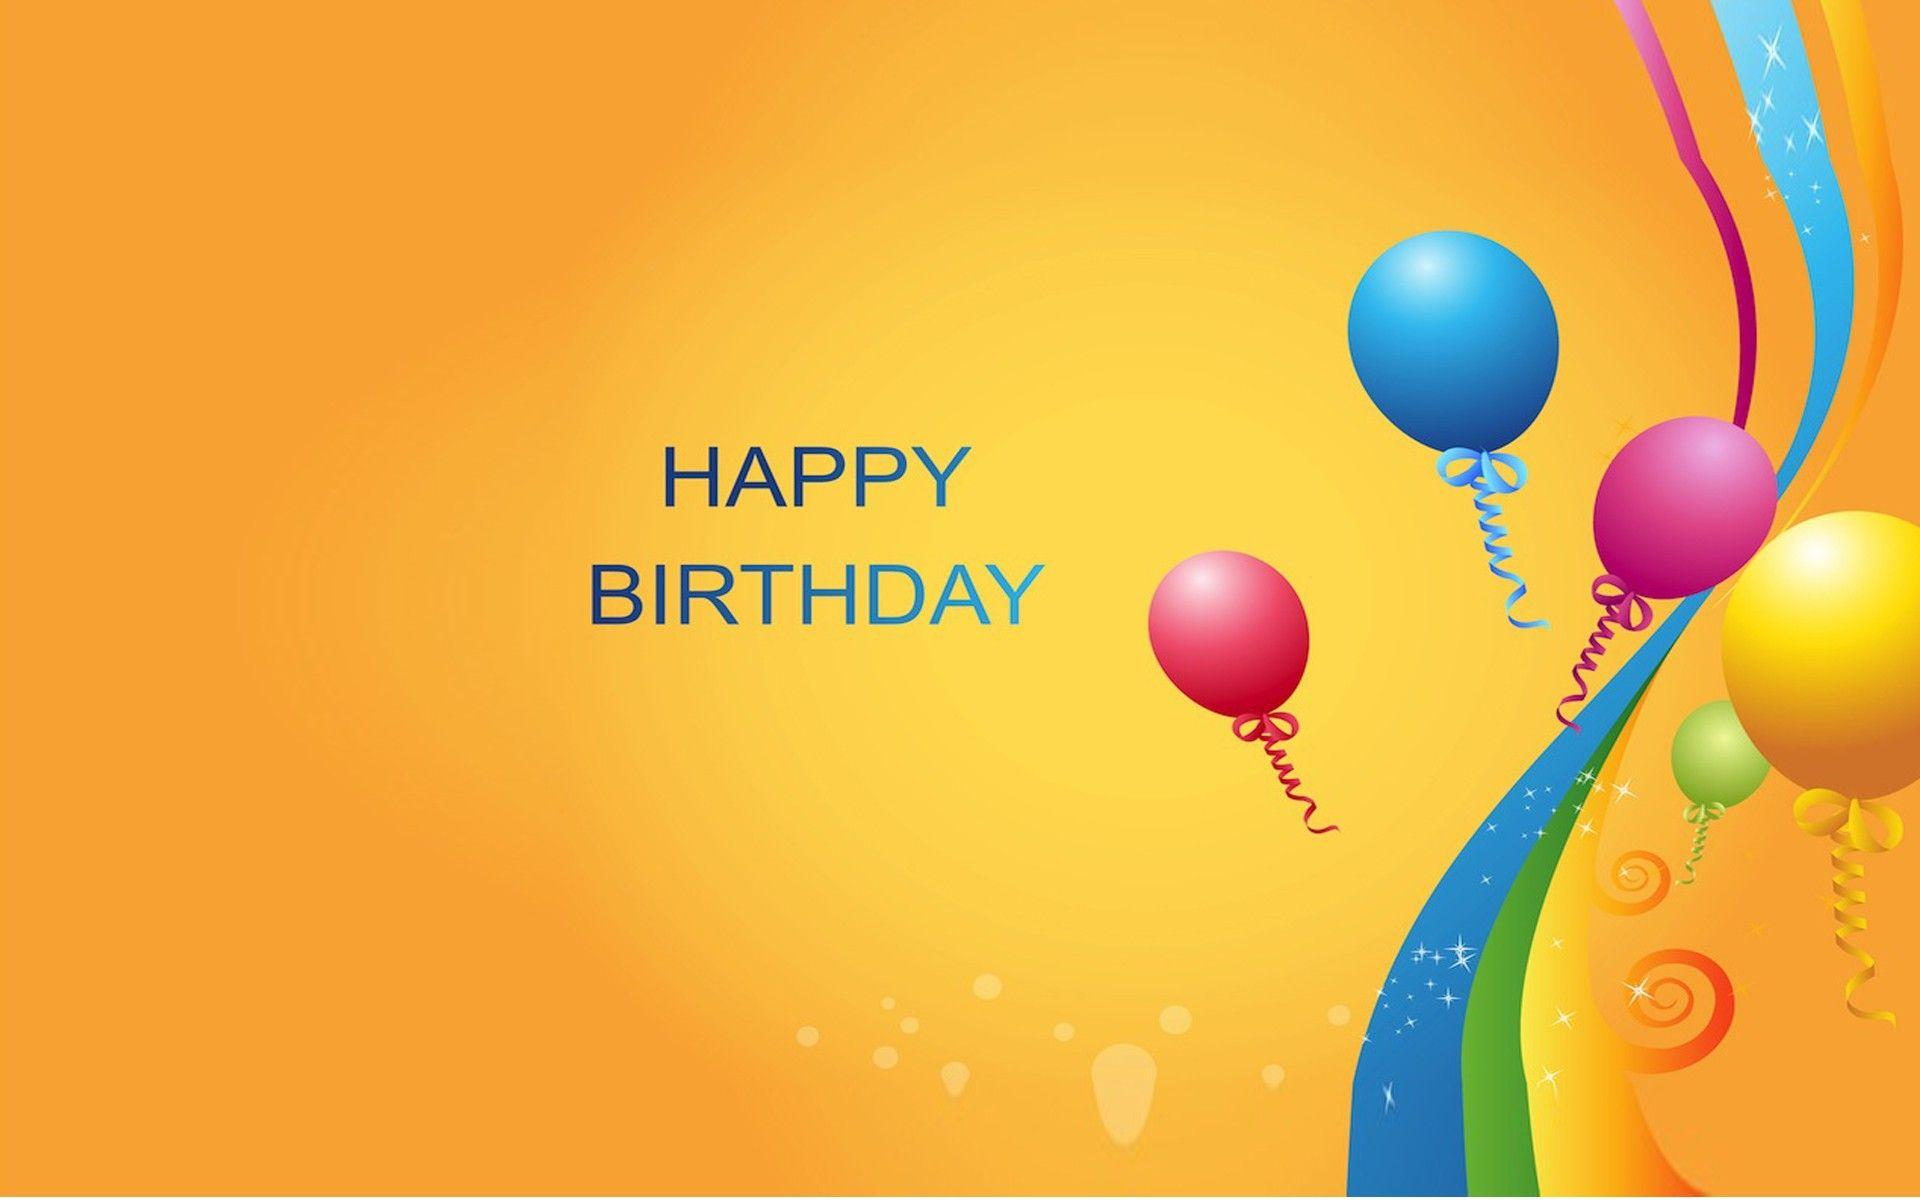 Happy Birthday Wallpaper, Image, Pictures and Photos